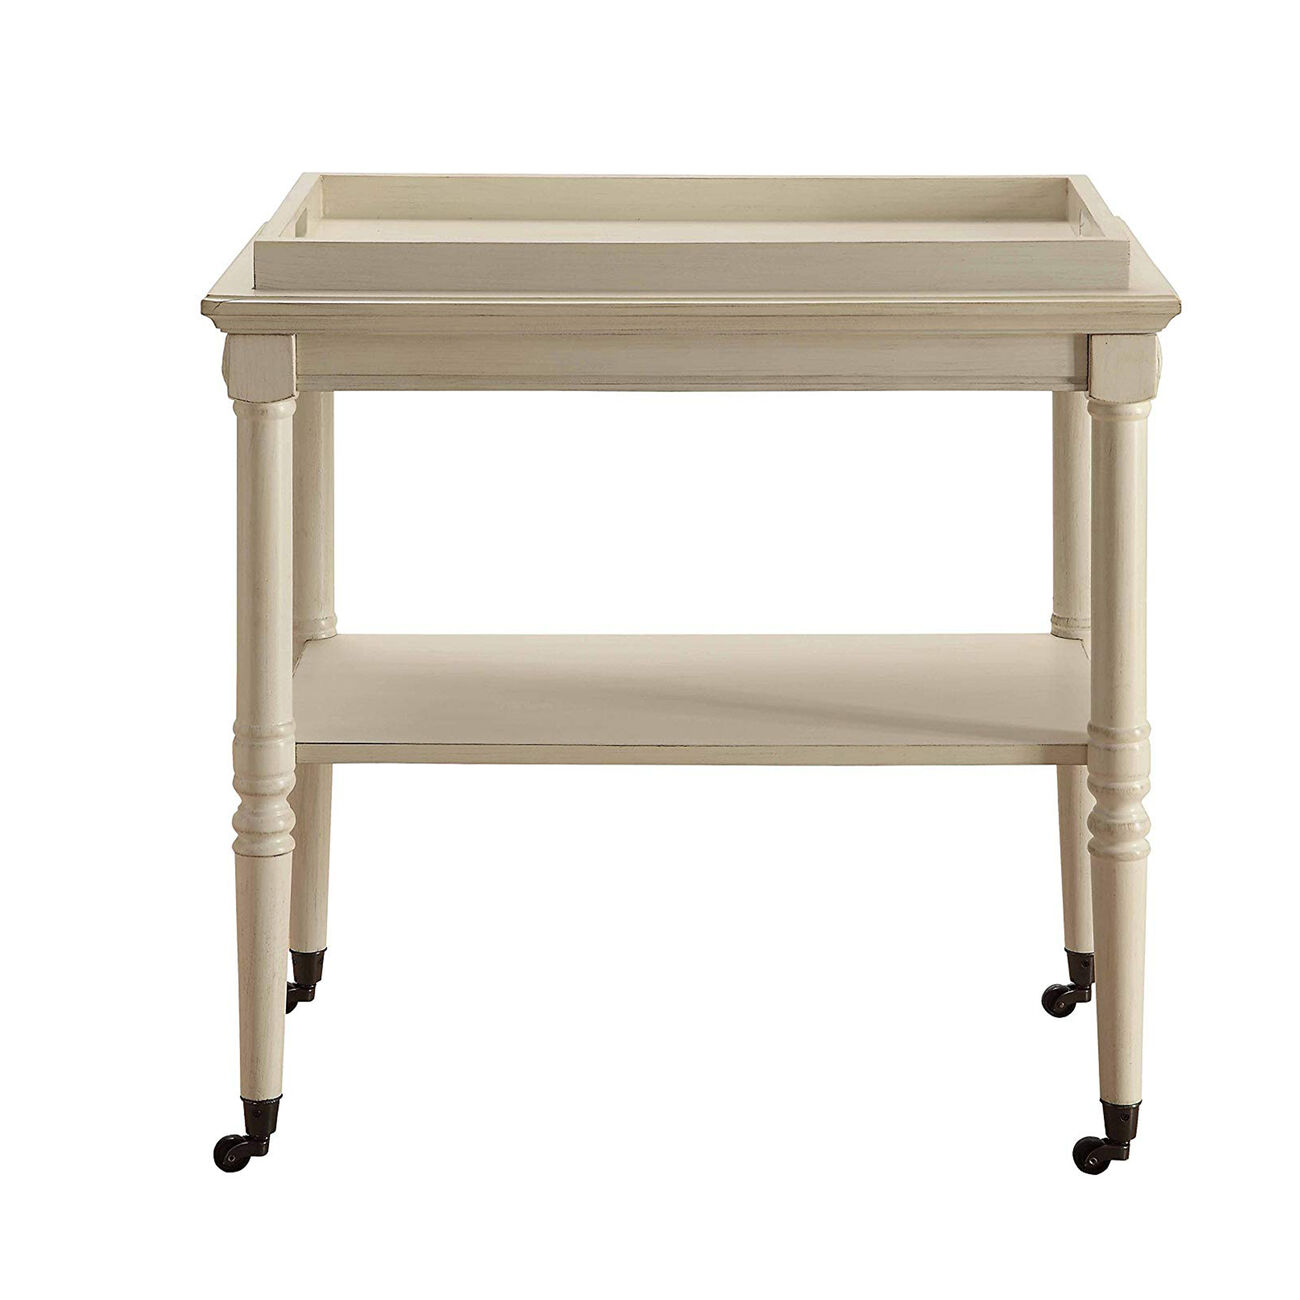 Wooden Serving Tray Table, Antique White